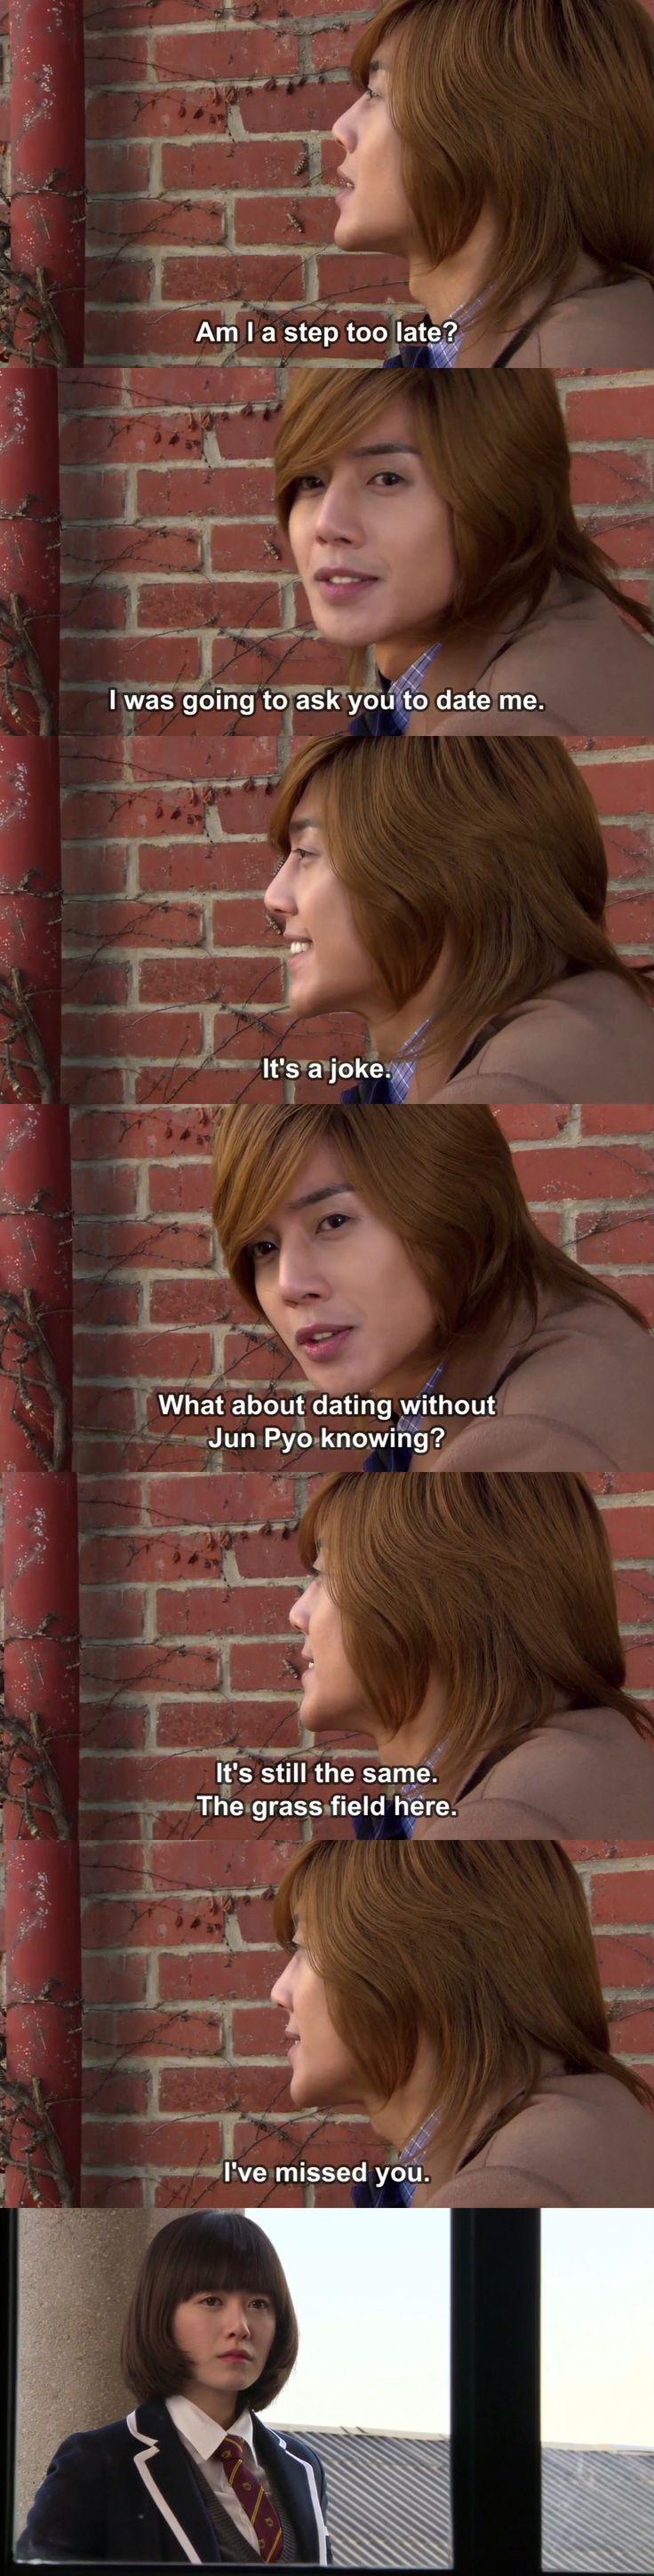 ku hye sun and kim hyun joong dating I feel like marriage rumors always tend to circulate immediately after a couple confirms dating rumors for example, rain and kim  hyun and ku hye sun  joong ki .